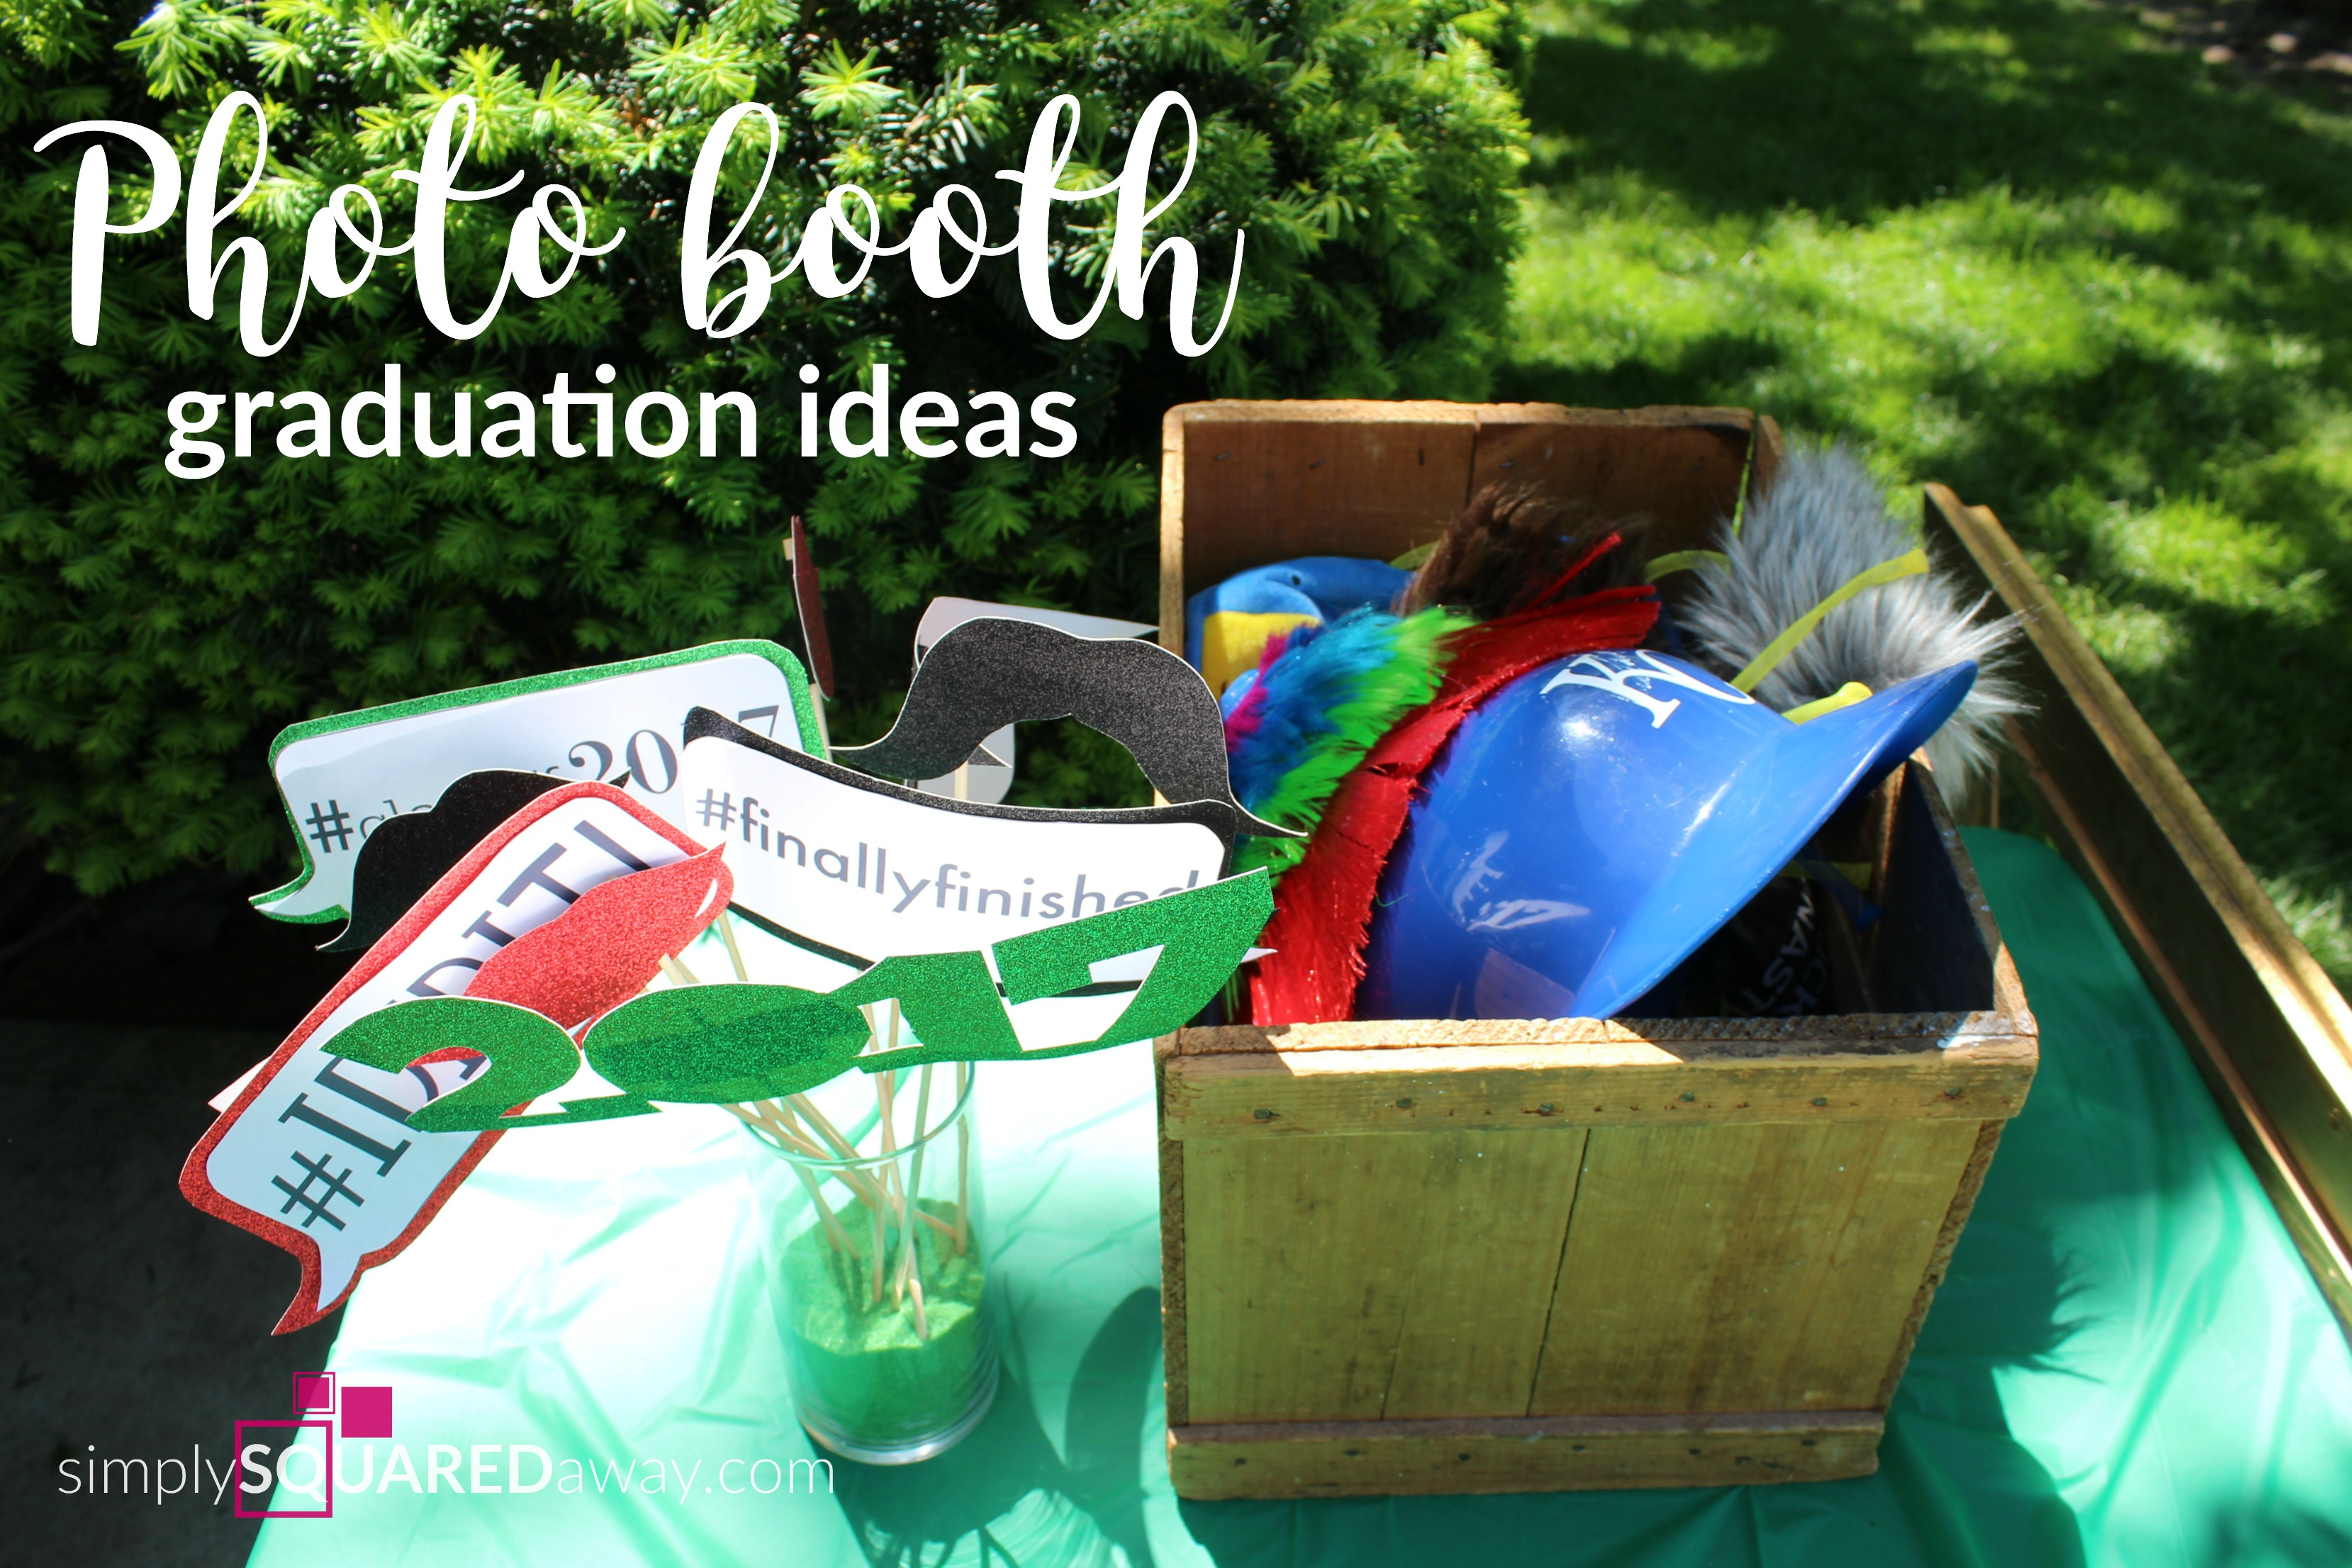 Comfortable Organizing Tips To Help You Plan Graduation Party Ideas Graduation Party Ideas Organizing Tips To Help You Plan Your Graduation Photo Book Ideas Nursing Graduation Photo Ideas ideas Graduation Photo Ideas